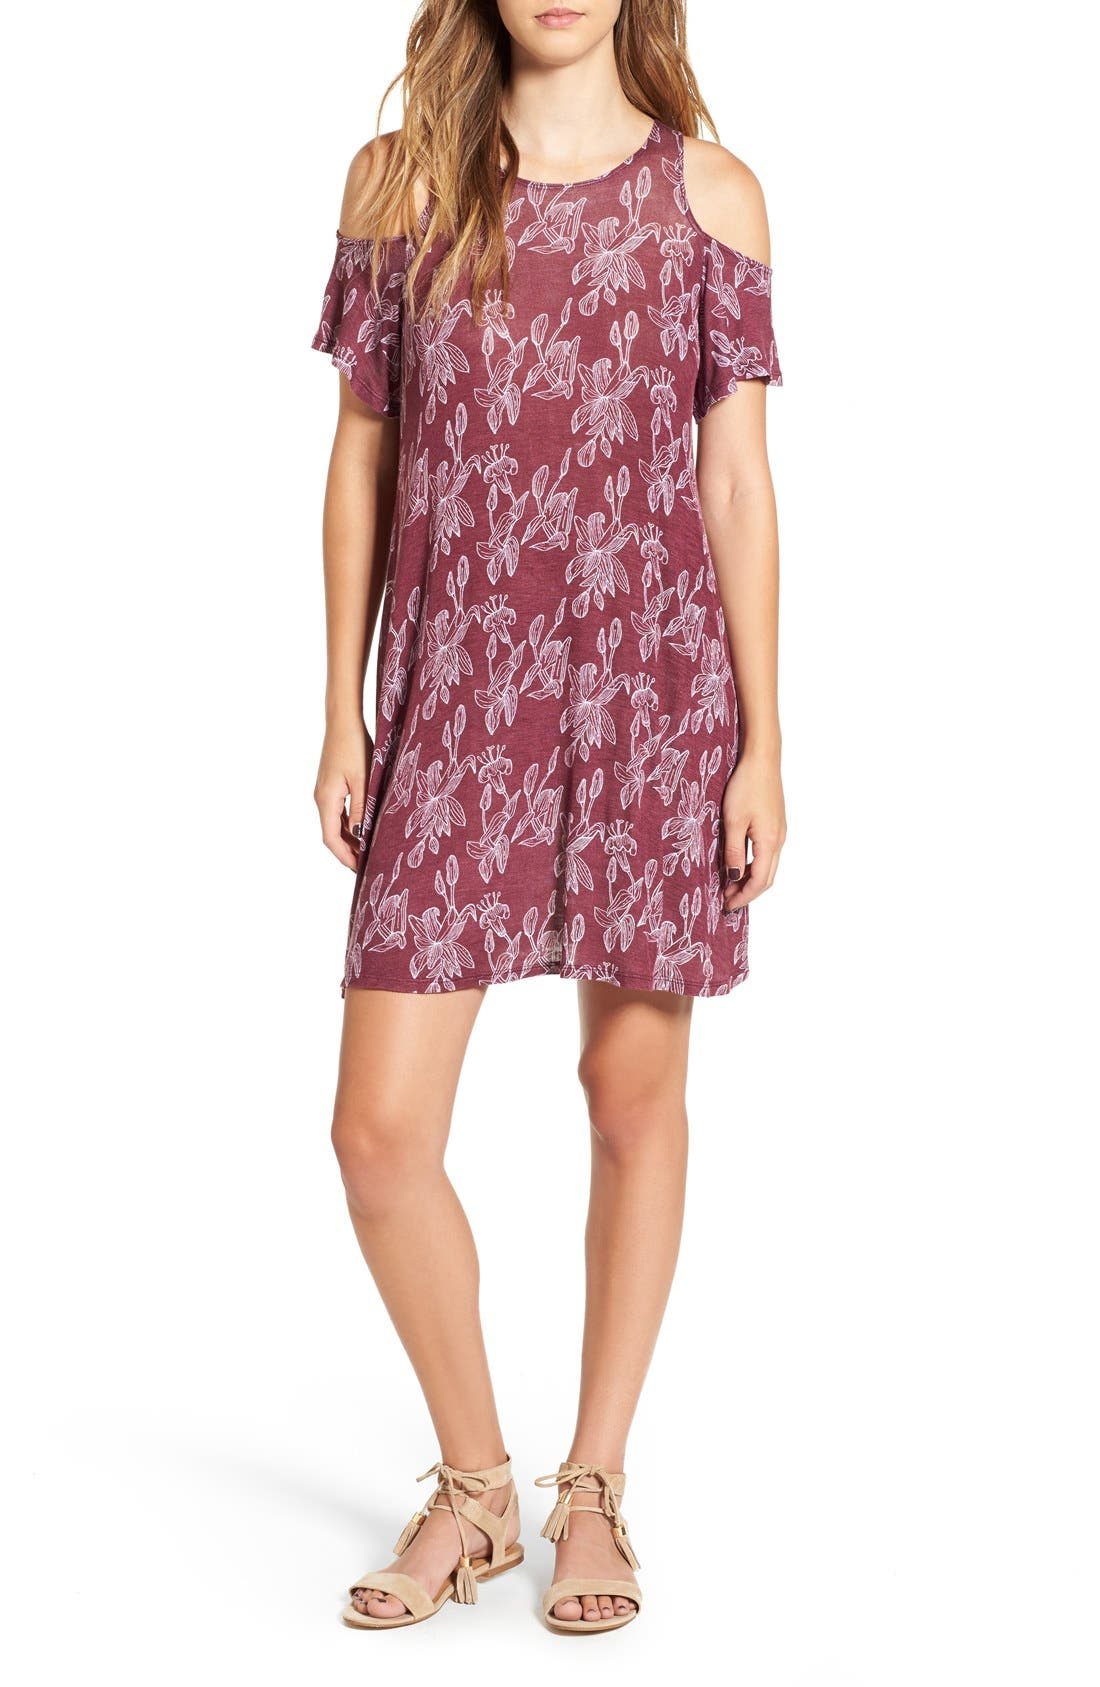 Main Image - Michelle by Comune 'Walthamstow' Floral Print Shift Dress